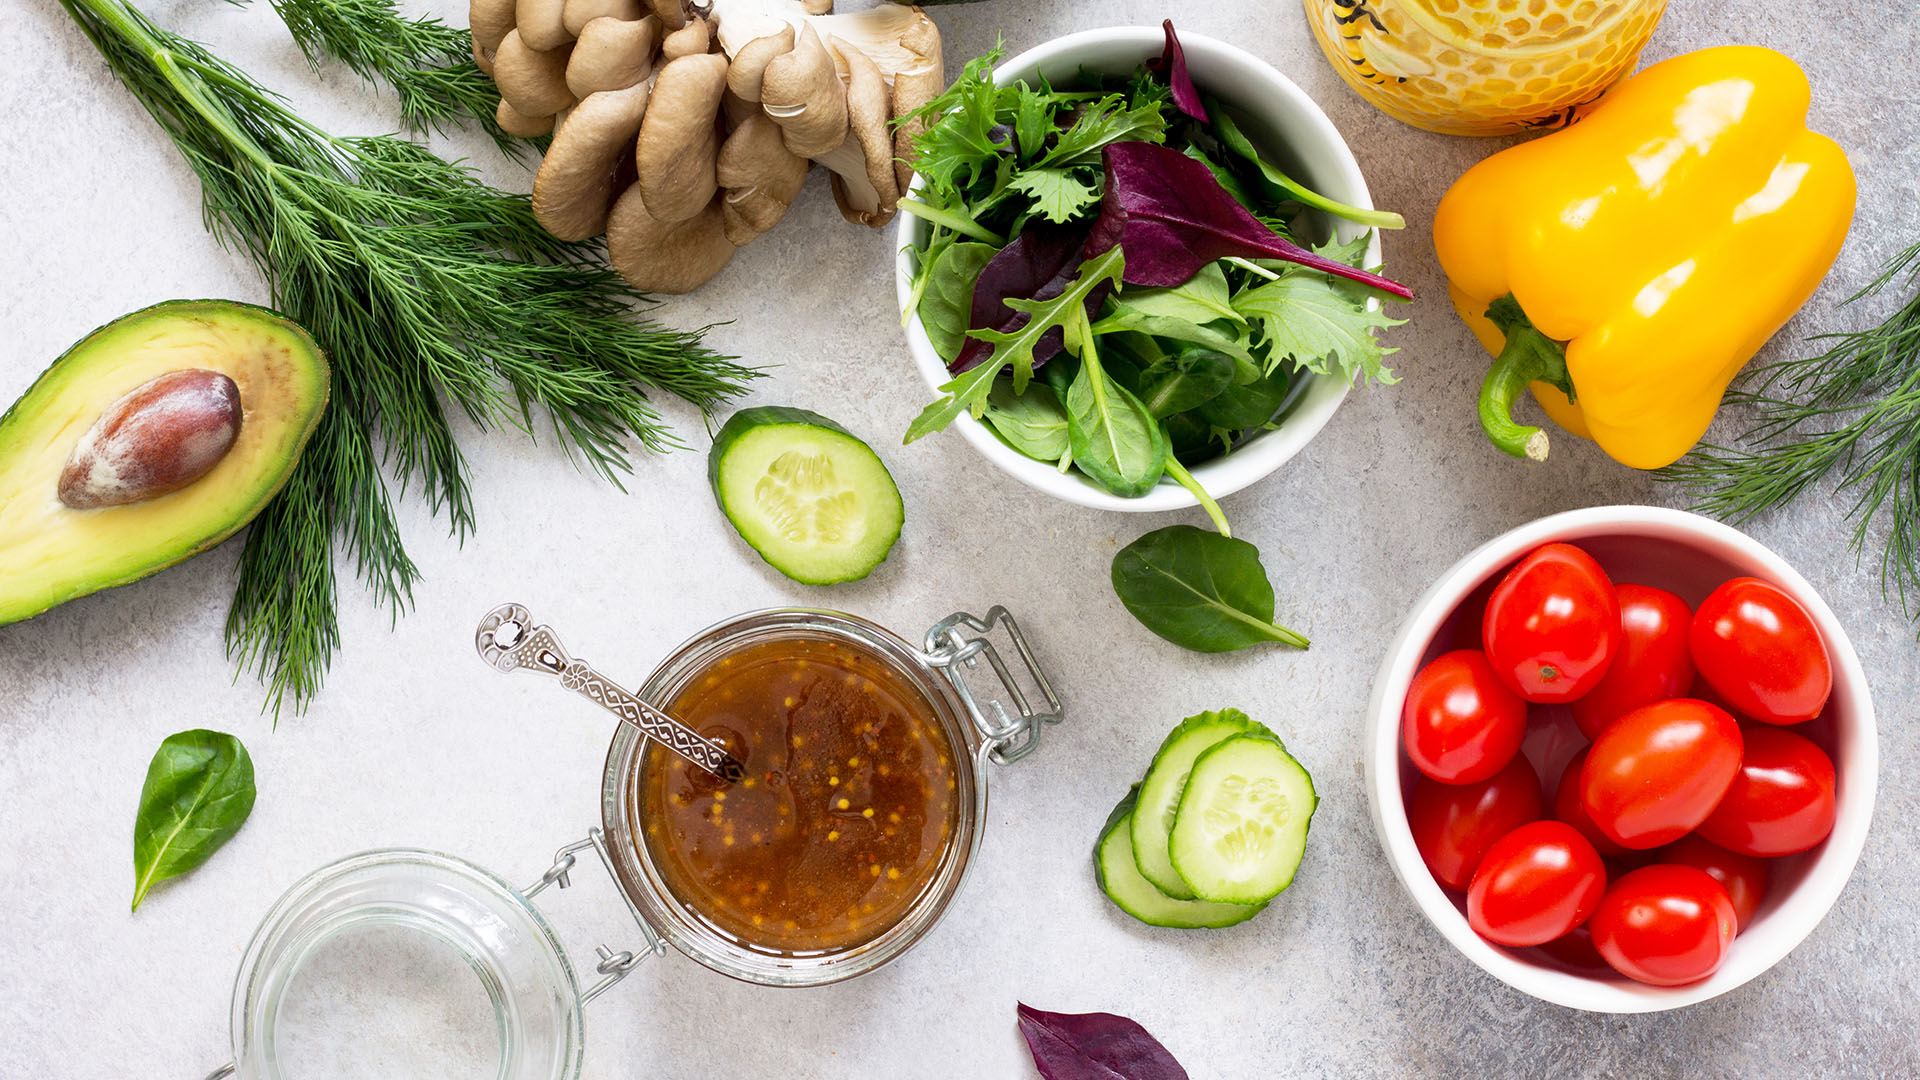 Superfoods and homemade salad dressing vinaigrette with mustard,